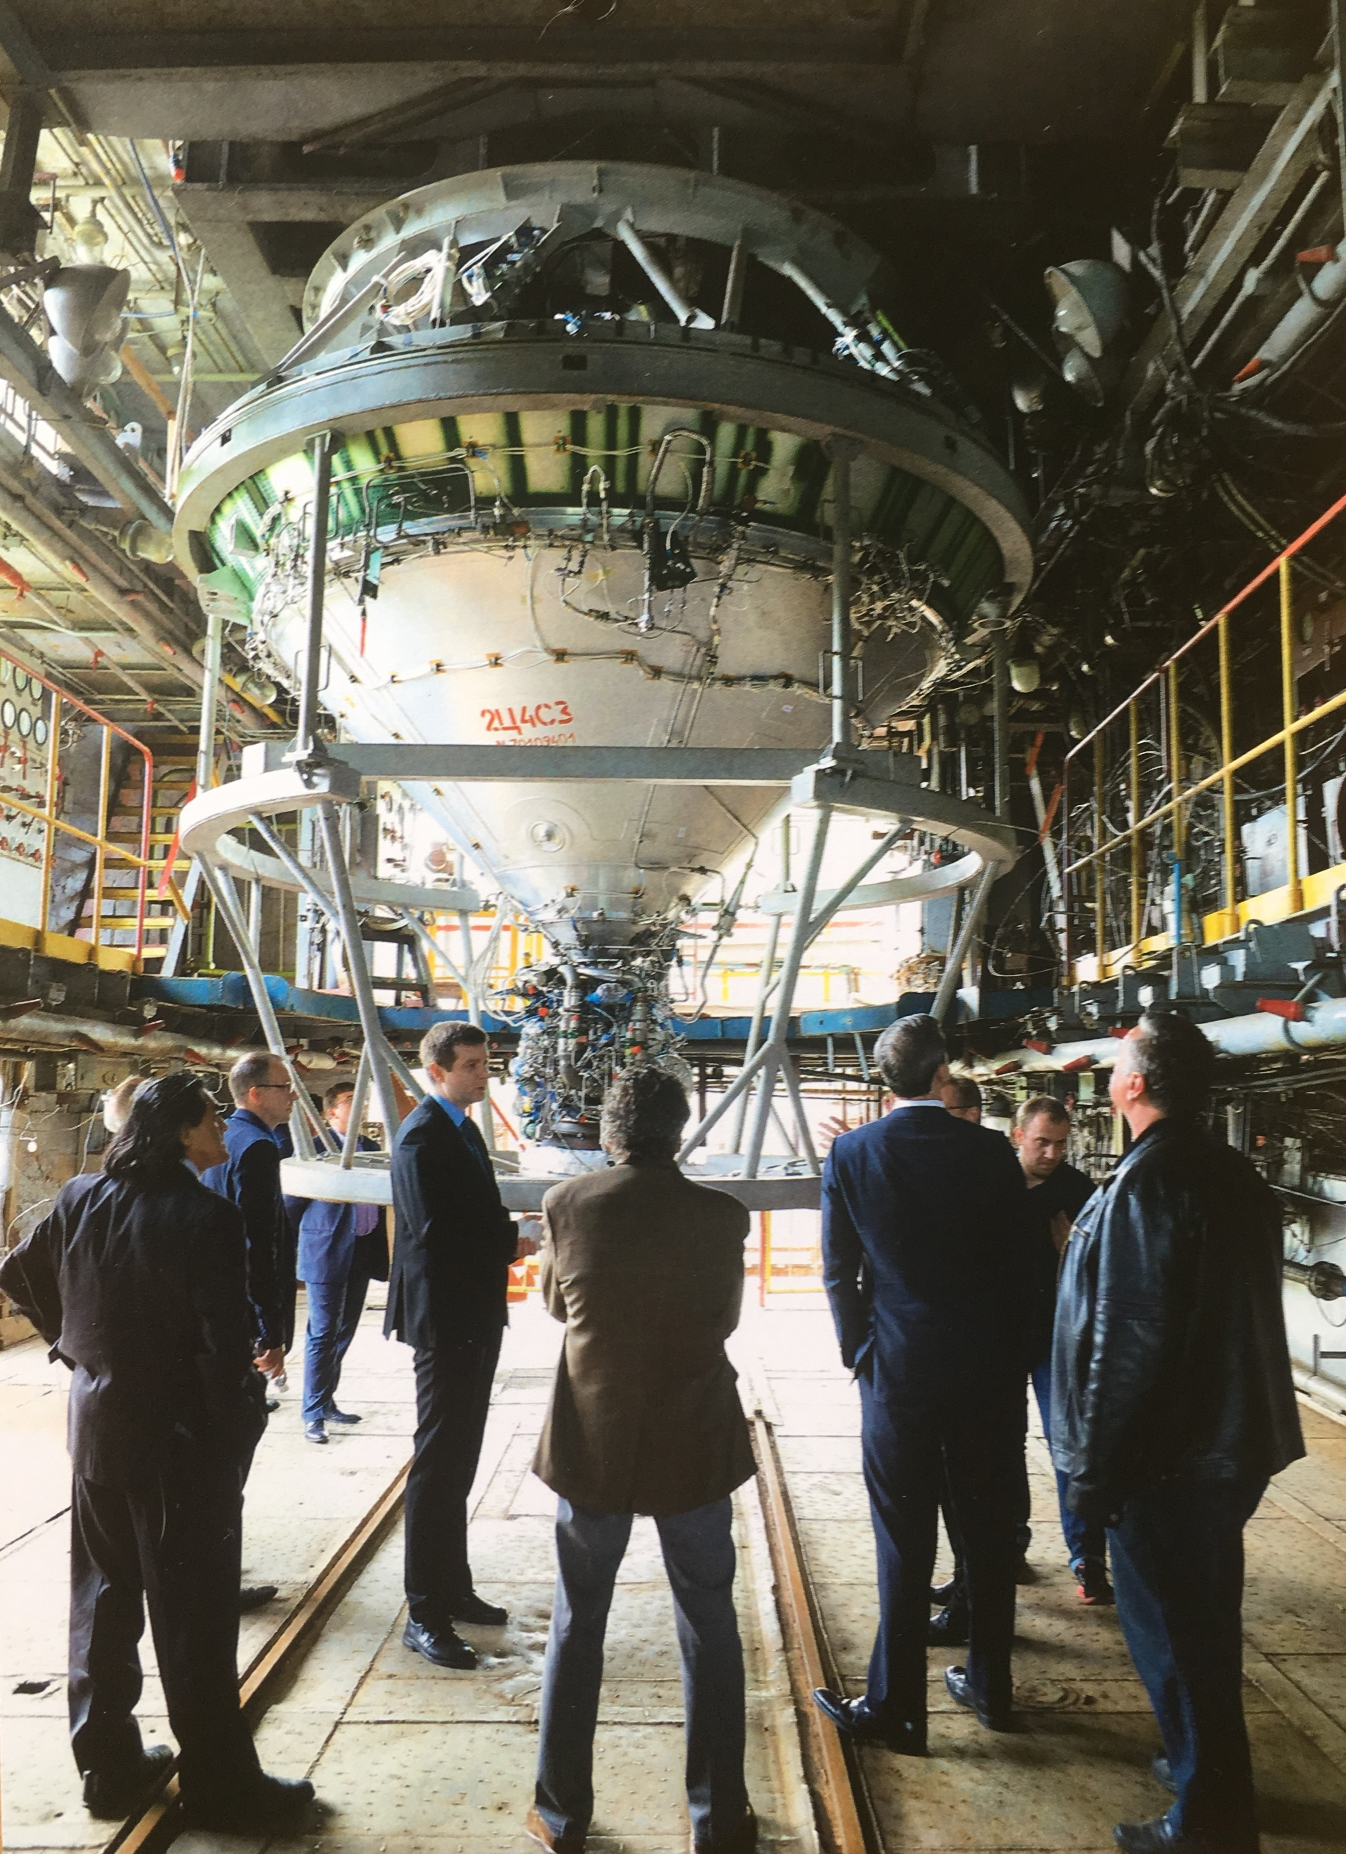 Cyclone 4M full upper stage propulsion system in preparation for acceptance hot fire test expected in July or August